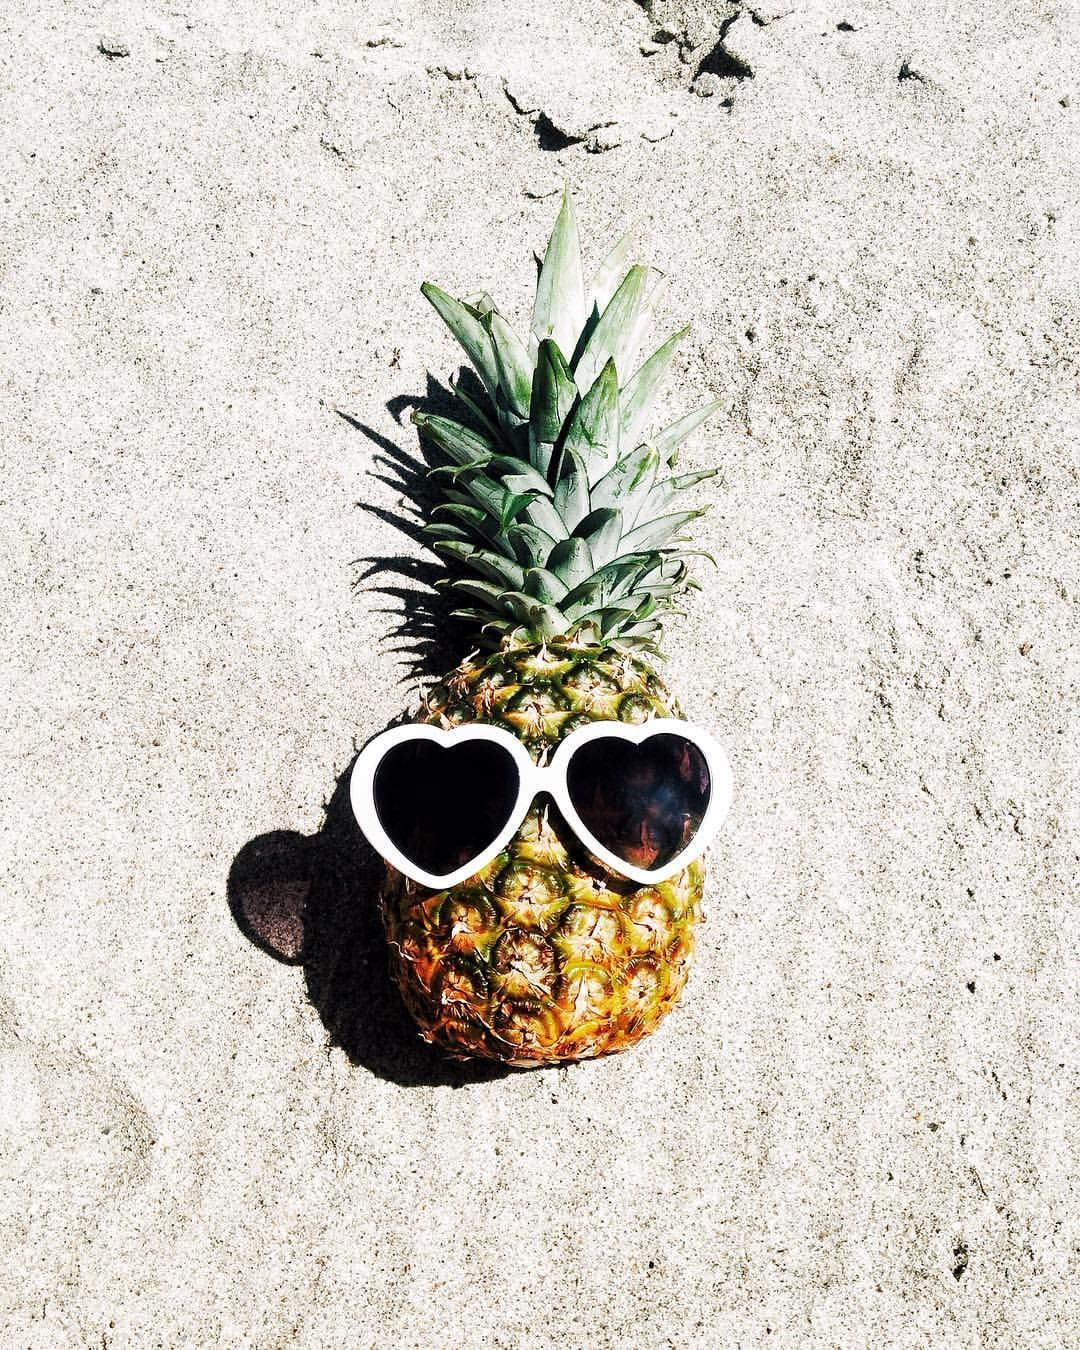 Summer Vibes Pineapple Wallpaper Pineapple Pictures Pineapple